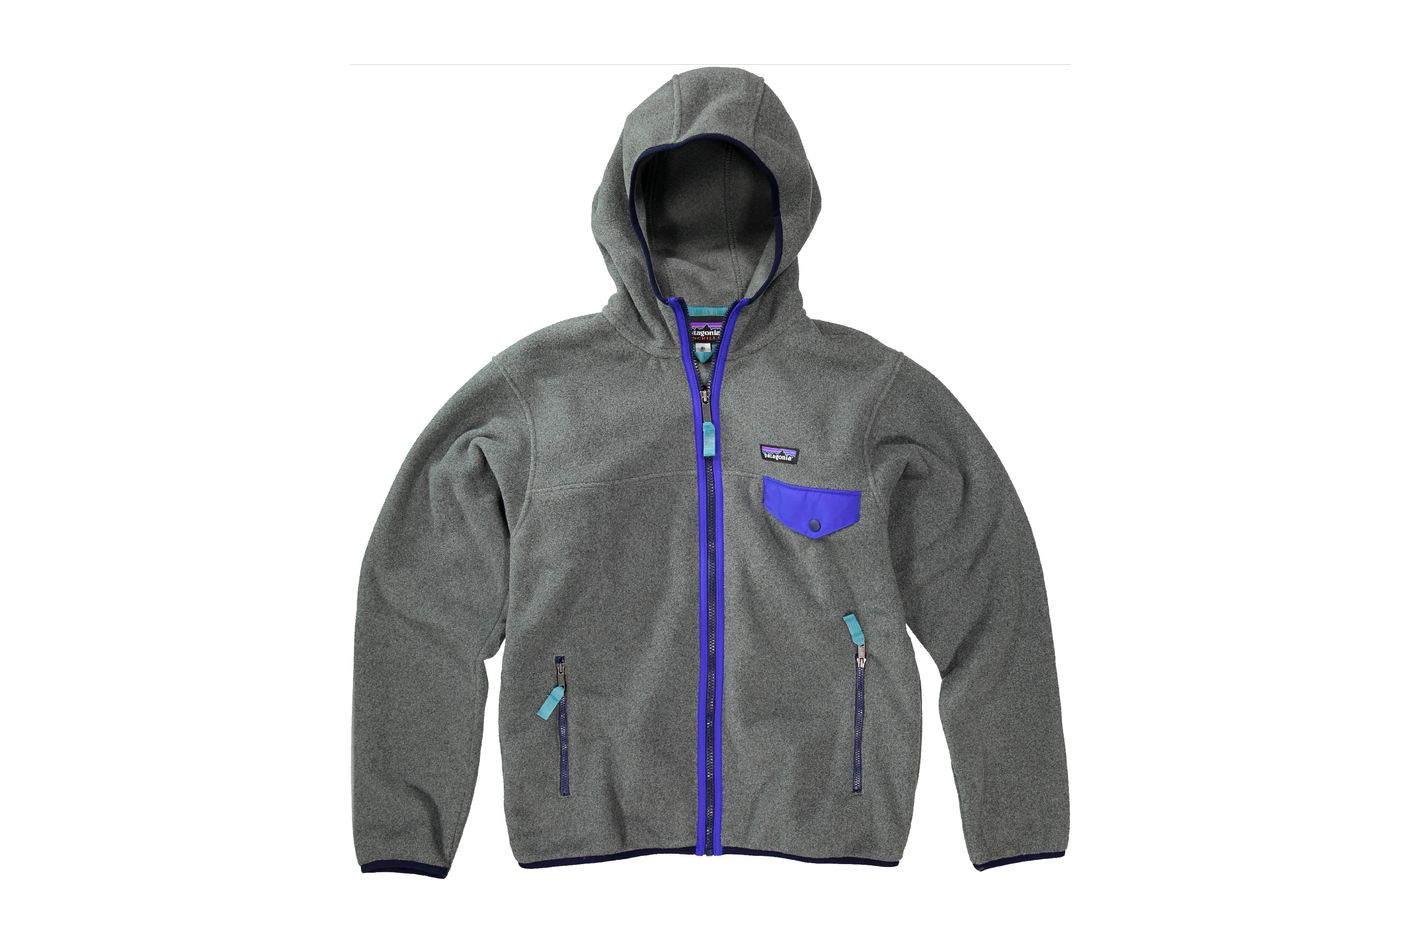 Patagonia Lightweight Synchilla Snap-T Hoodie in Nickel